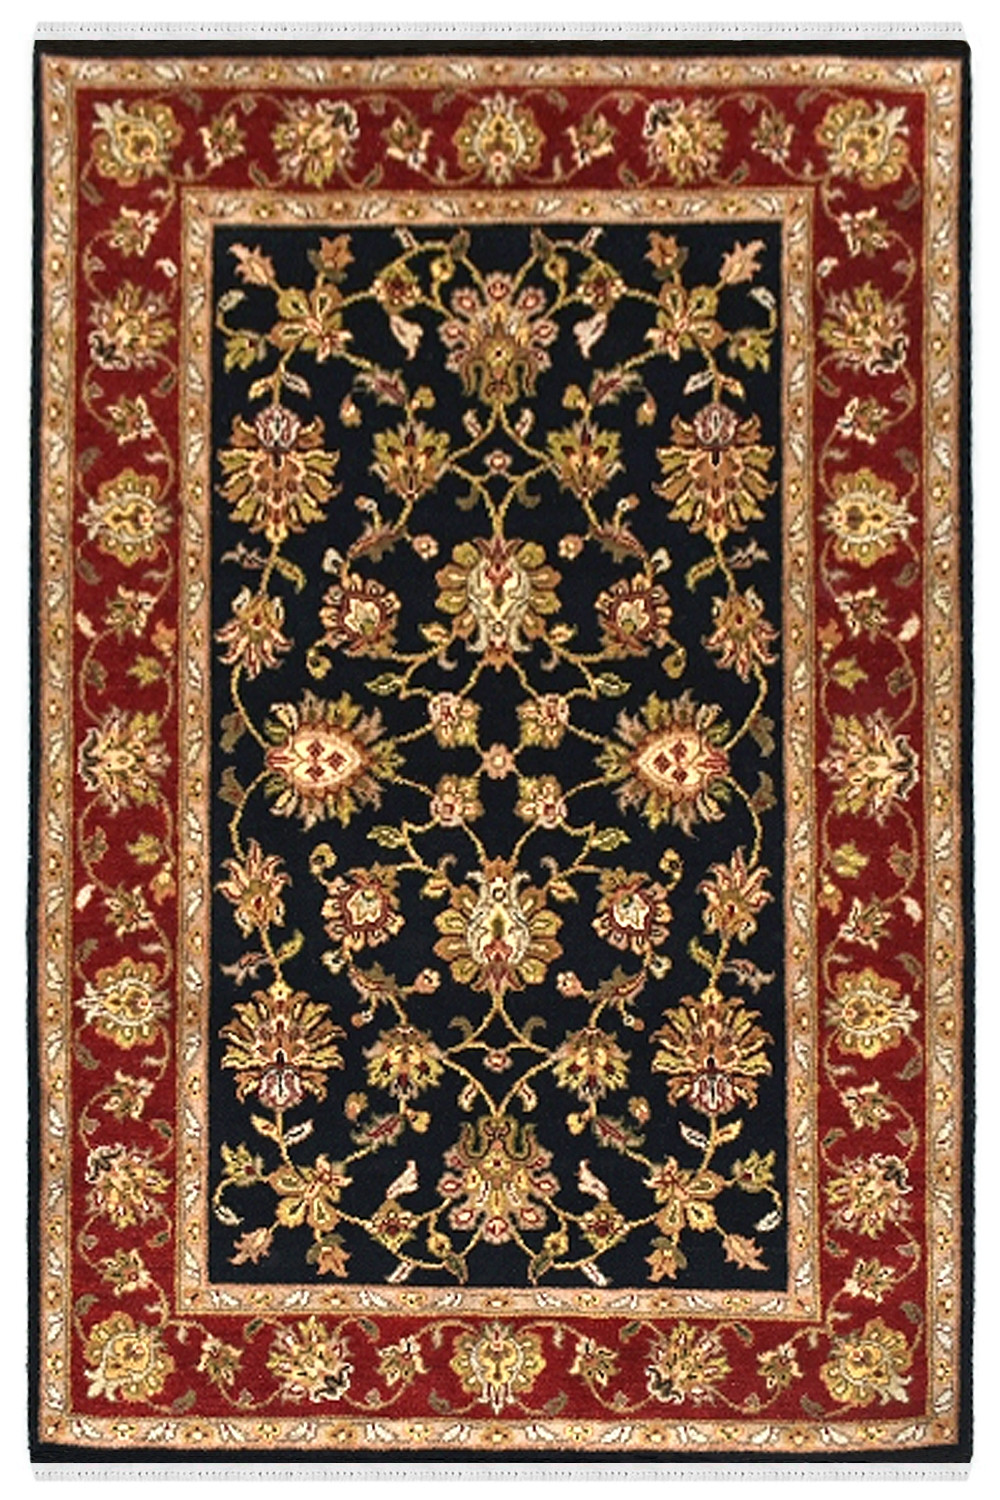 Bye Discount Rugs Online And This Eye Catching Beautiful